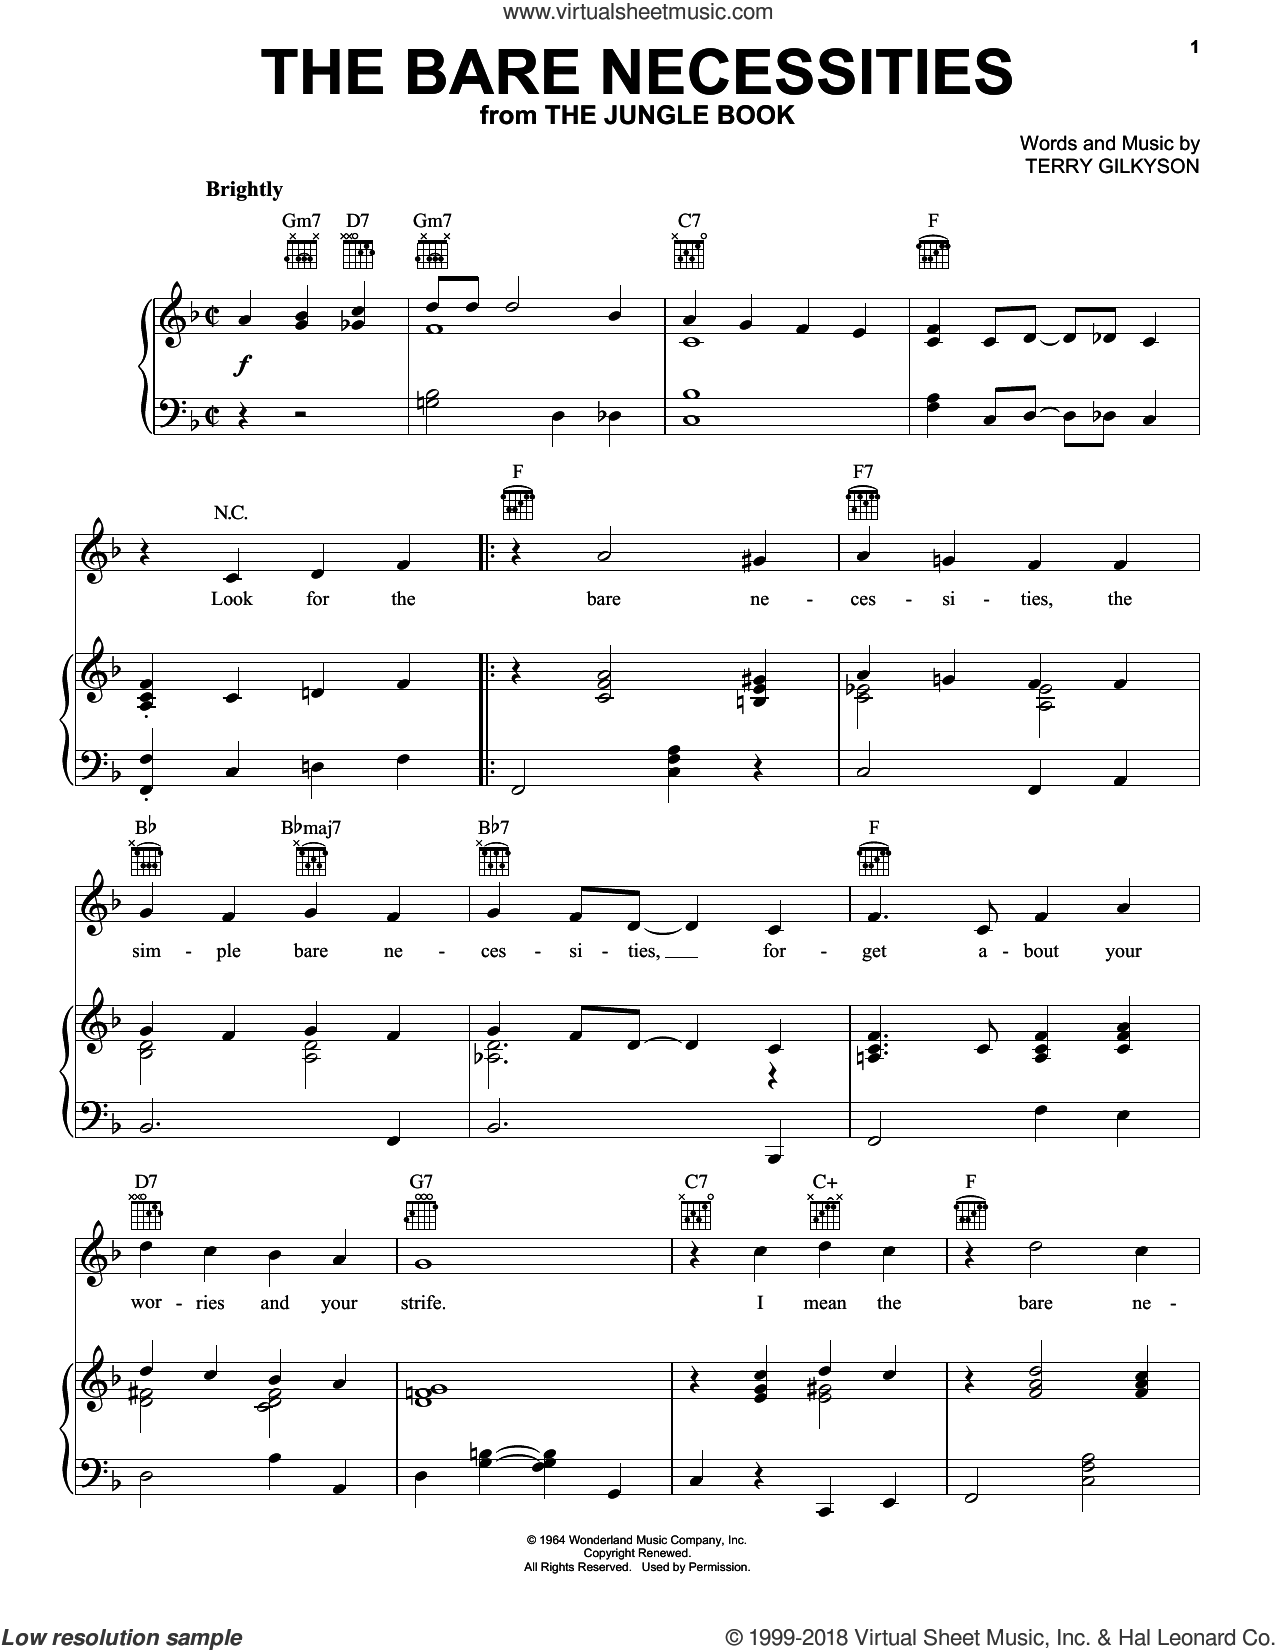 The Bare Necessities sheet music for voice, piano or guitar by Terry Gilkyson, intermediate